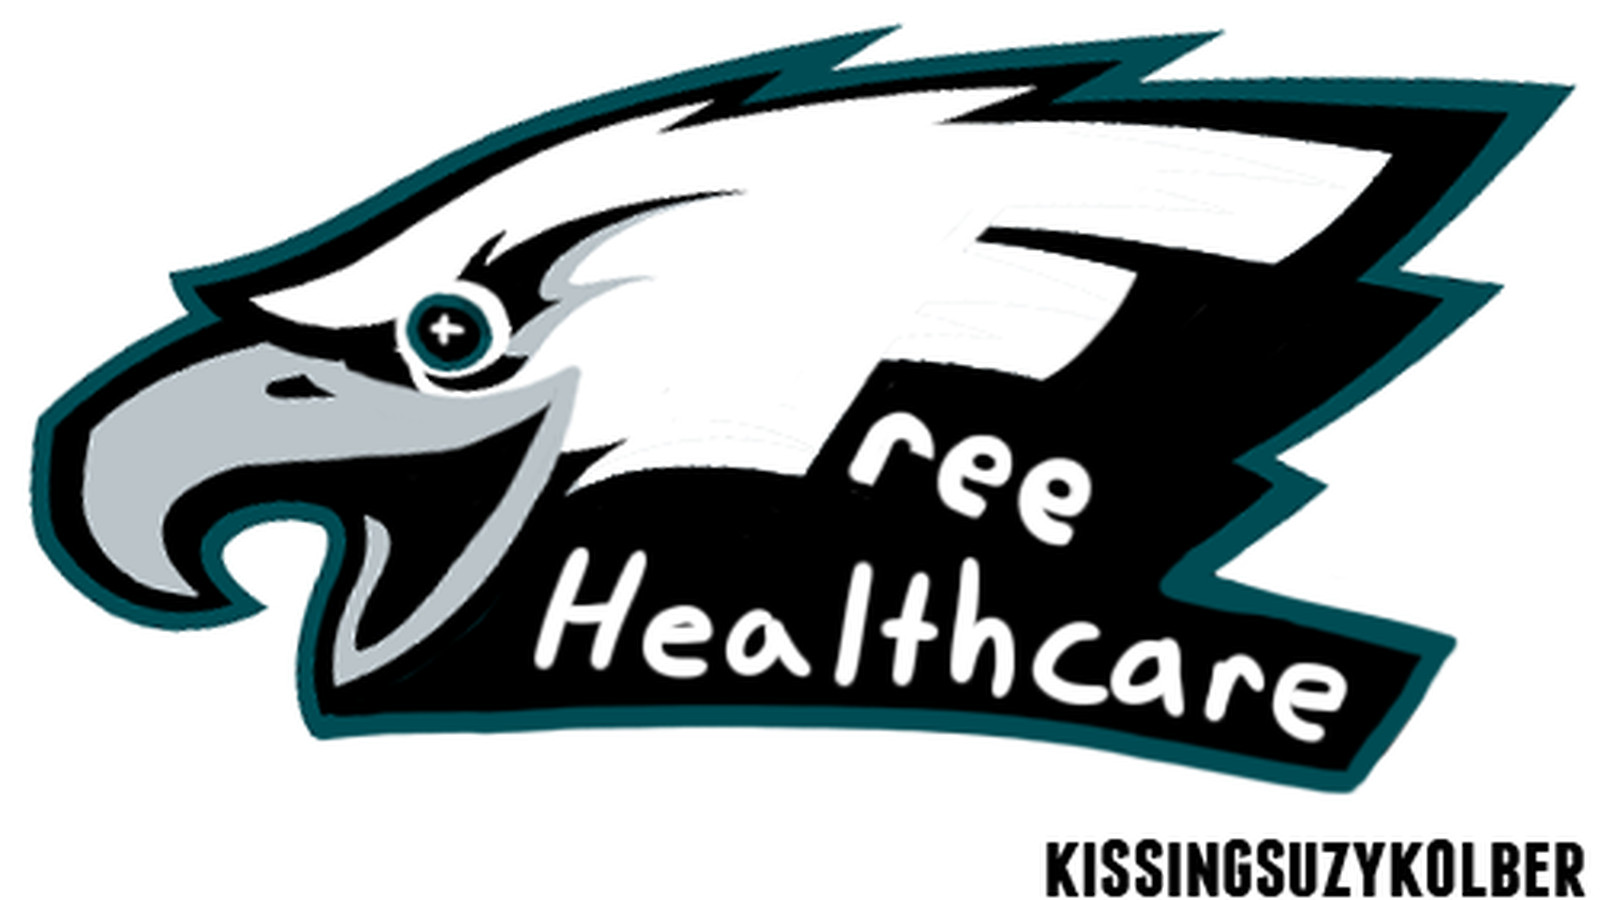 the canadian version of the eagles logo bleeding green nation